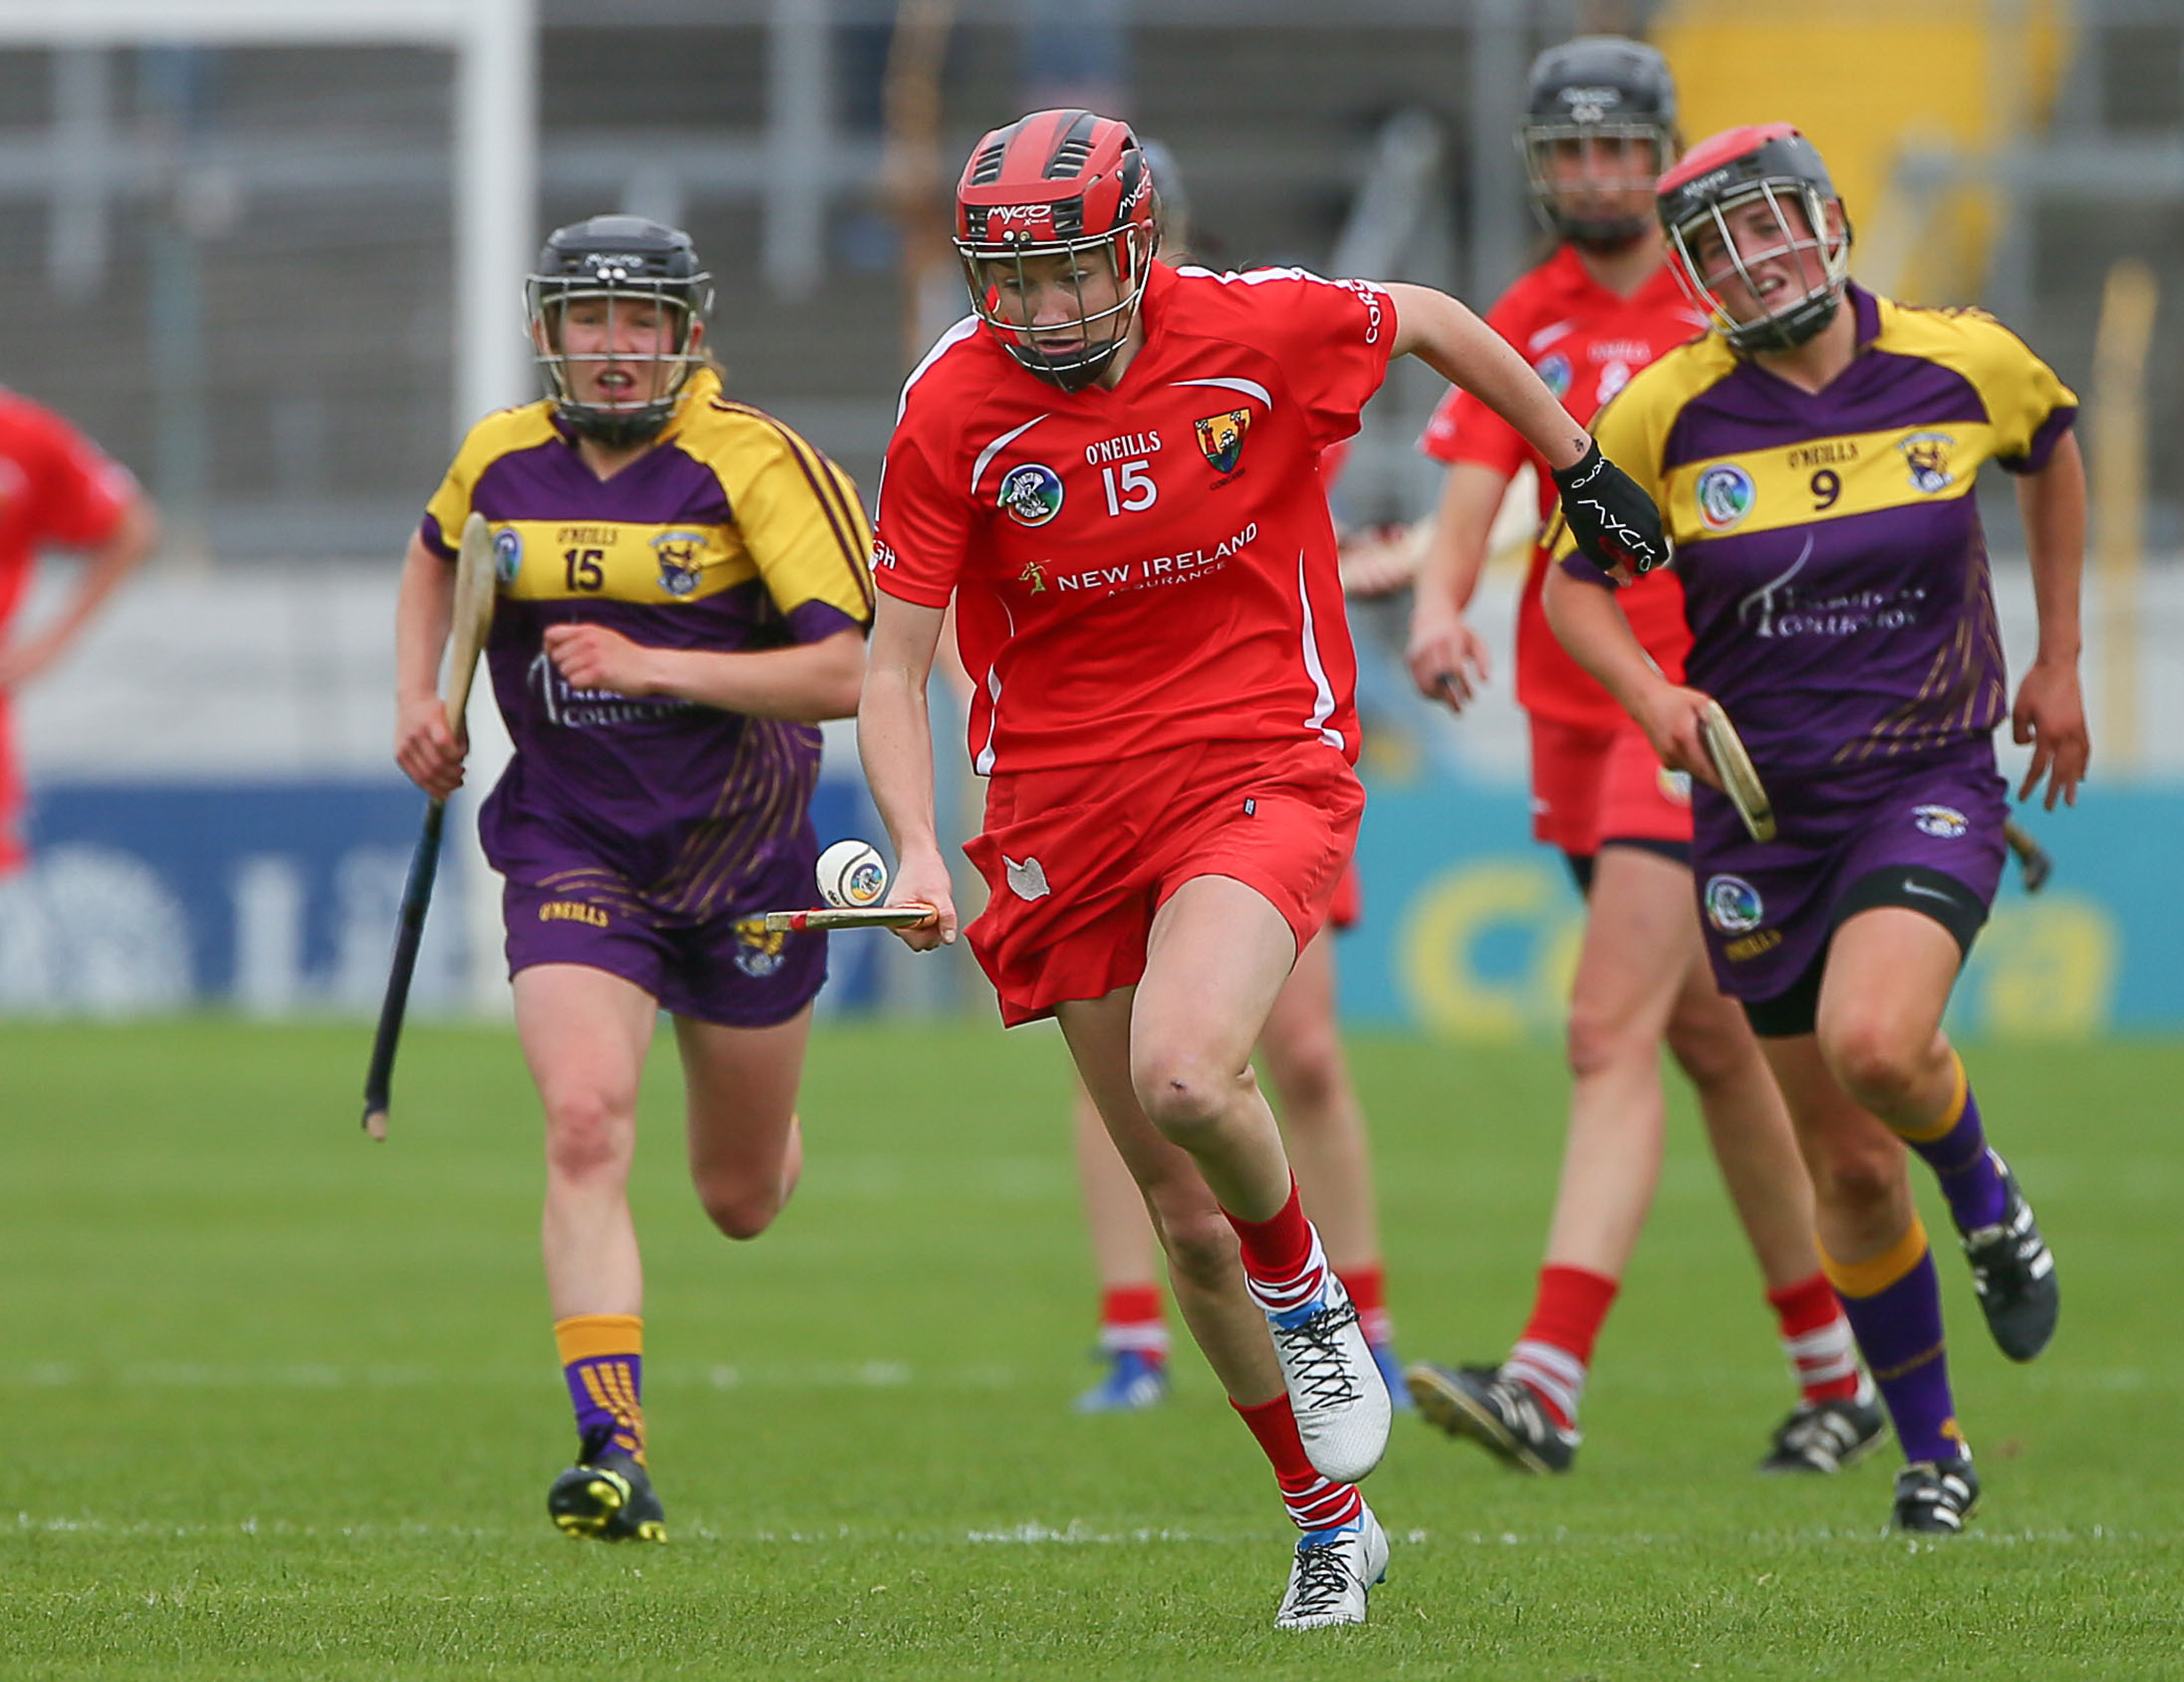 Cork Camogie players gain an edge with Performa Sports